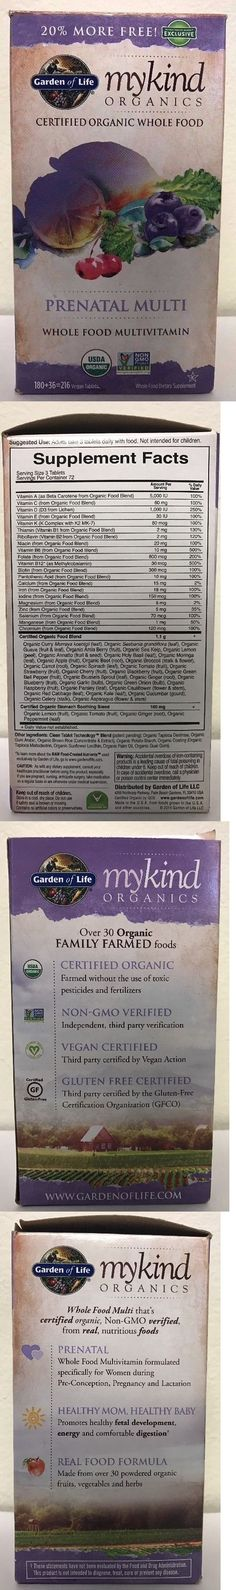 Other Vitamins and Supplements: (New) Garden Of Life Mykind Organics Prenatal Multi Vitamins 216 Vegan Tablets -> BUY IT NOW ONLY: $42.49 on eBay!